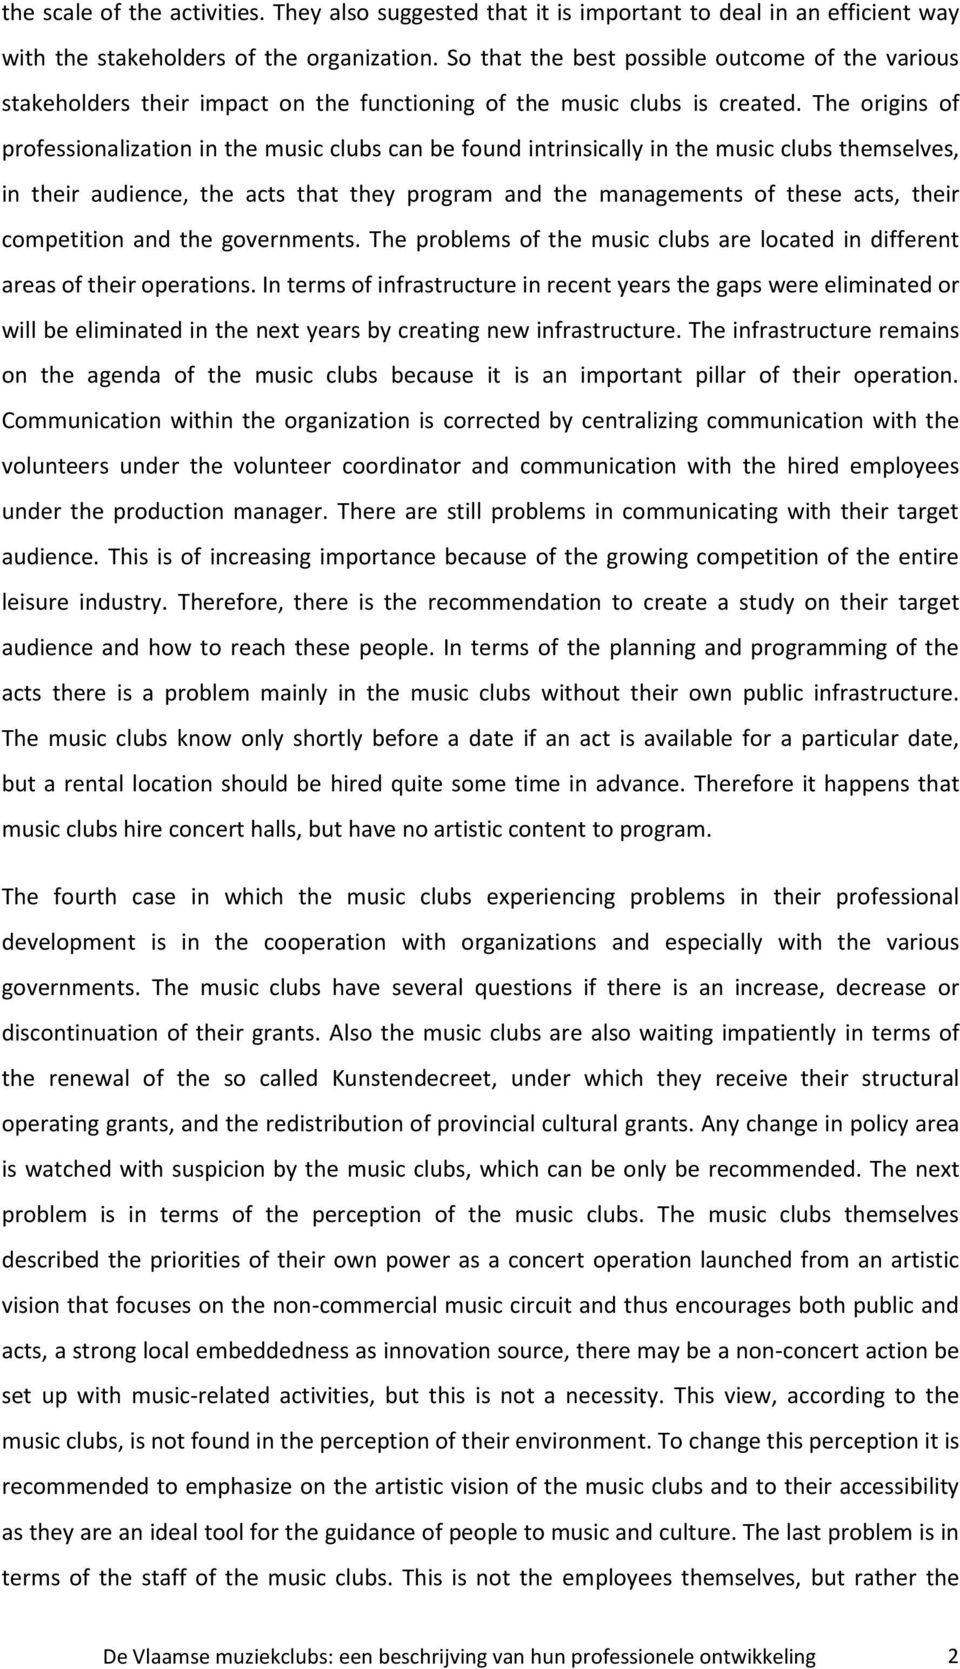 The origins of professionalization in the music clubs can be found intrinsically in the music clubs themselves, in their audience, the acts that they program and the managements of these acts, their